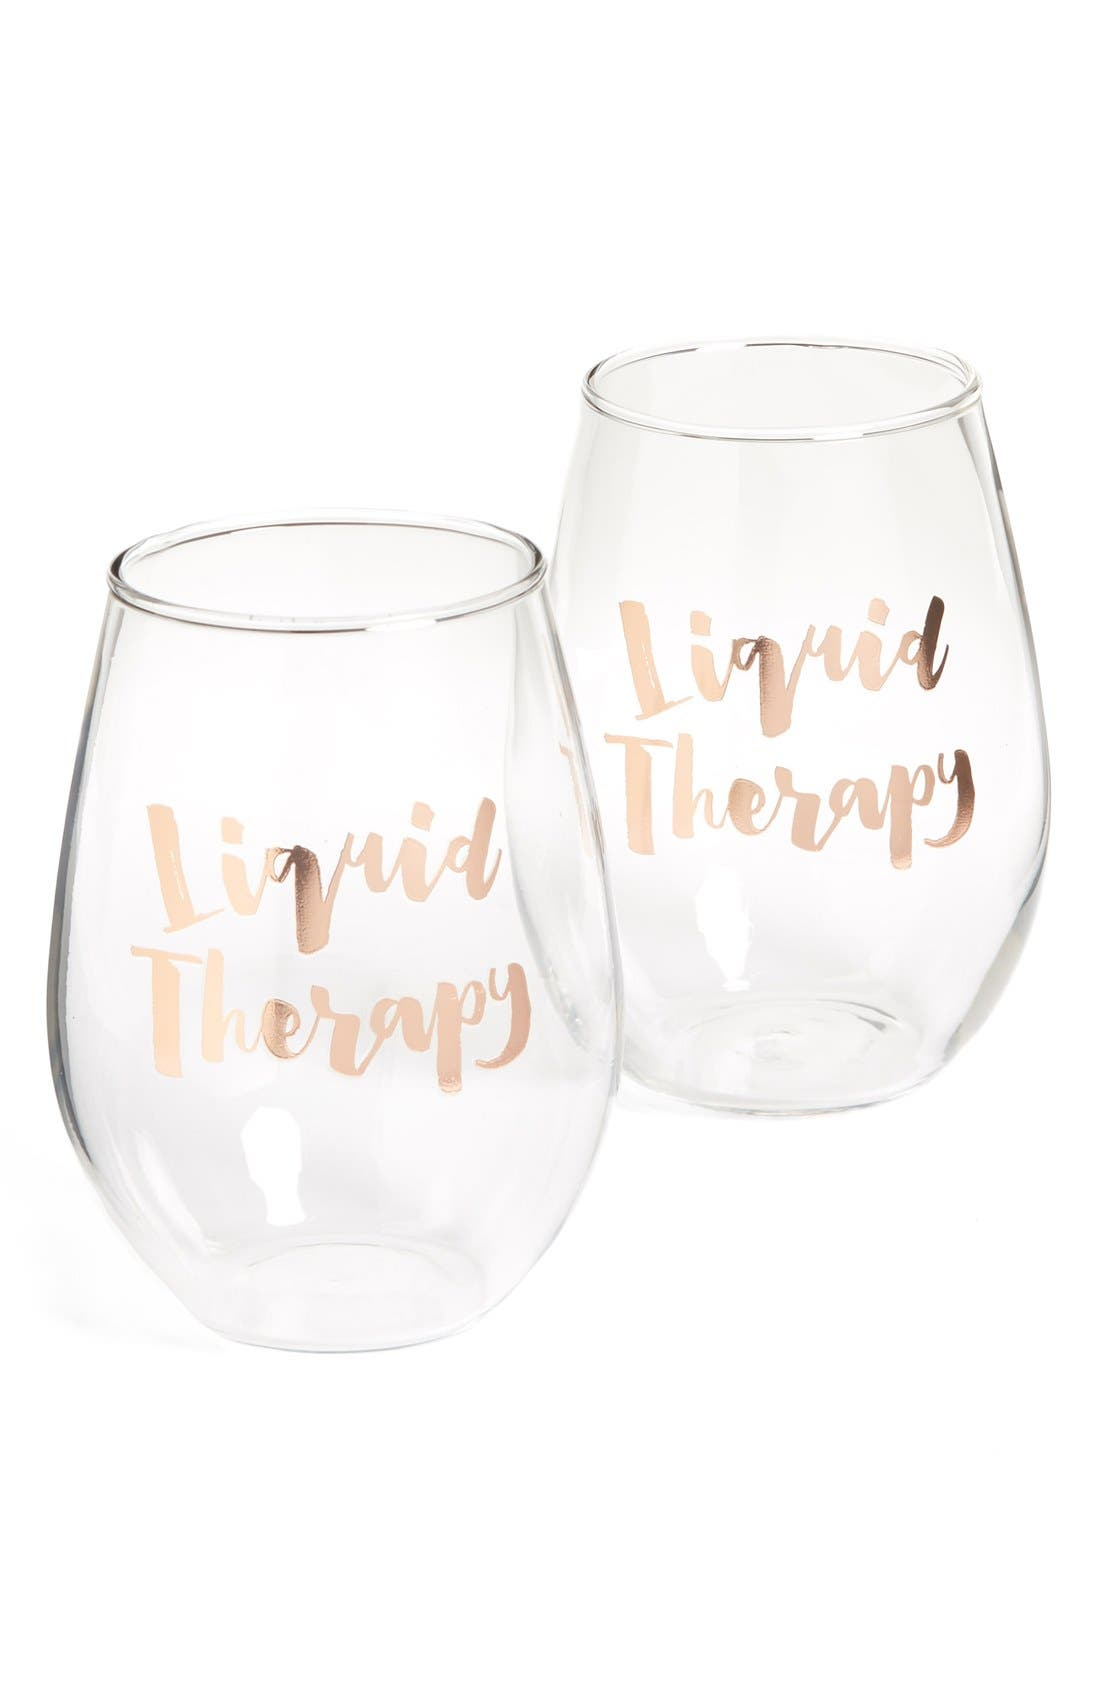 Liquid Therapy Set of 2 Stemless Wine Glasses,                         Main,                         color, White